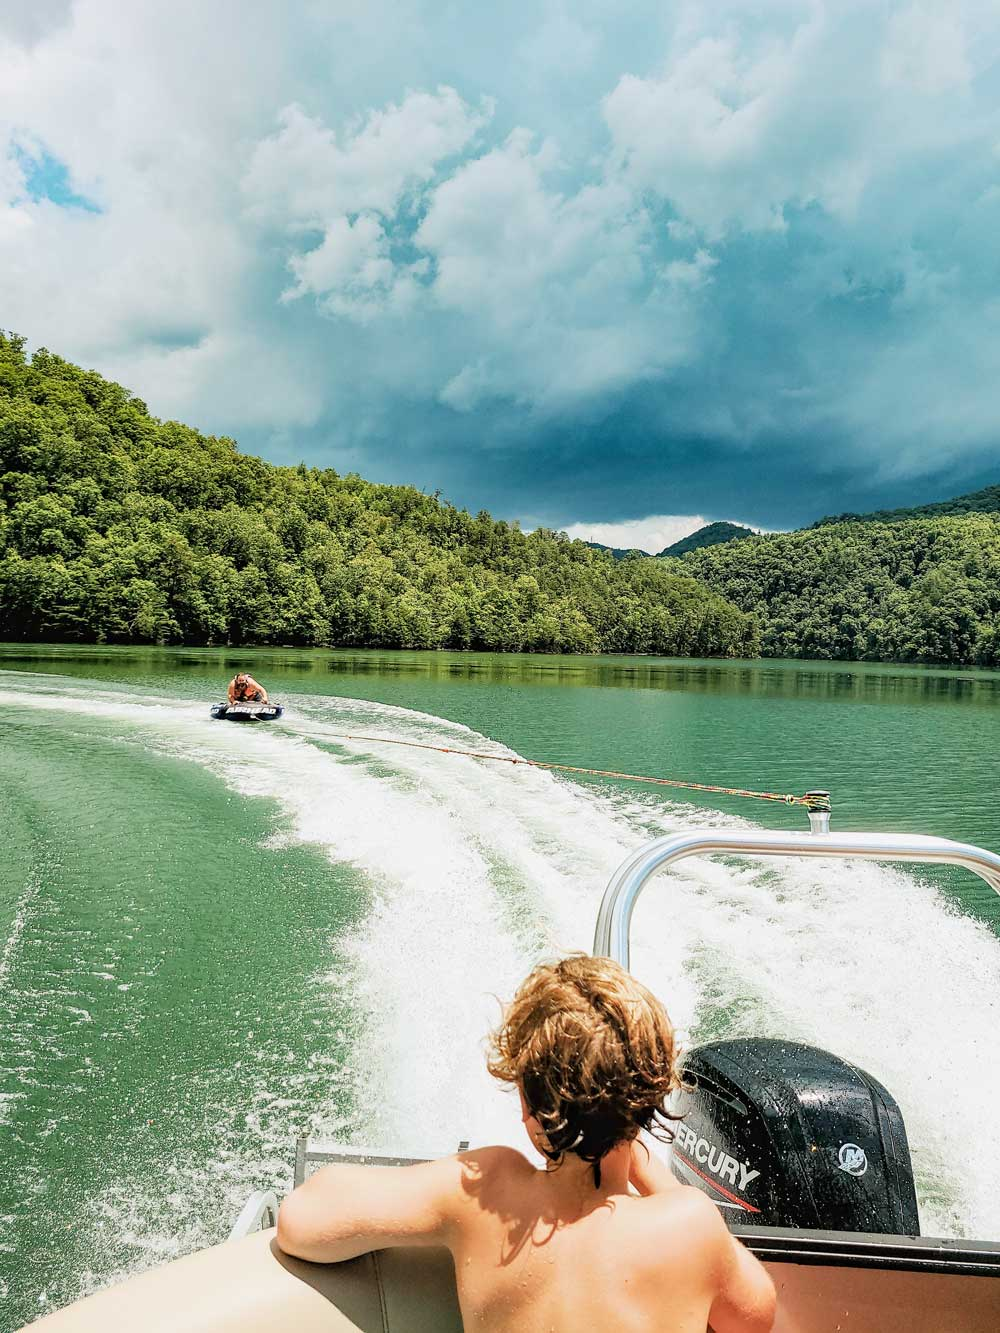 Best Things to Do in Bryson City NC with Kids - Boating on Lake Fontana.   Things to do in Bryson City NC by popular Florida travel blog, Fresh Mommy Blog: image of a family boating on Lake Fontana.